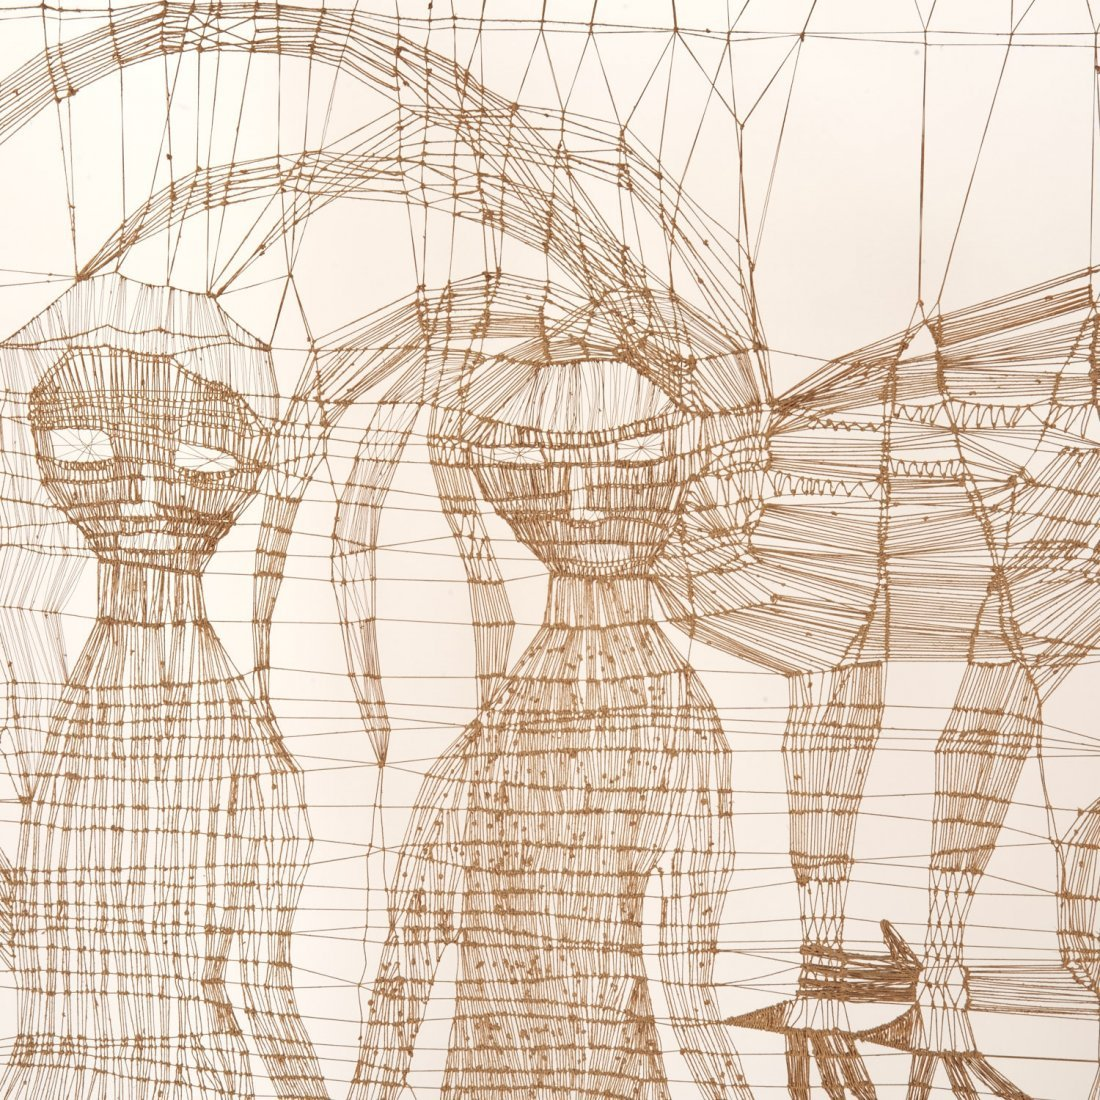 Circle of Sue Fuller, large string composition - 3